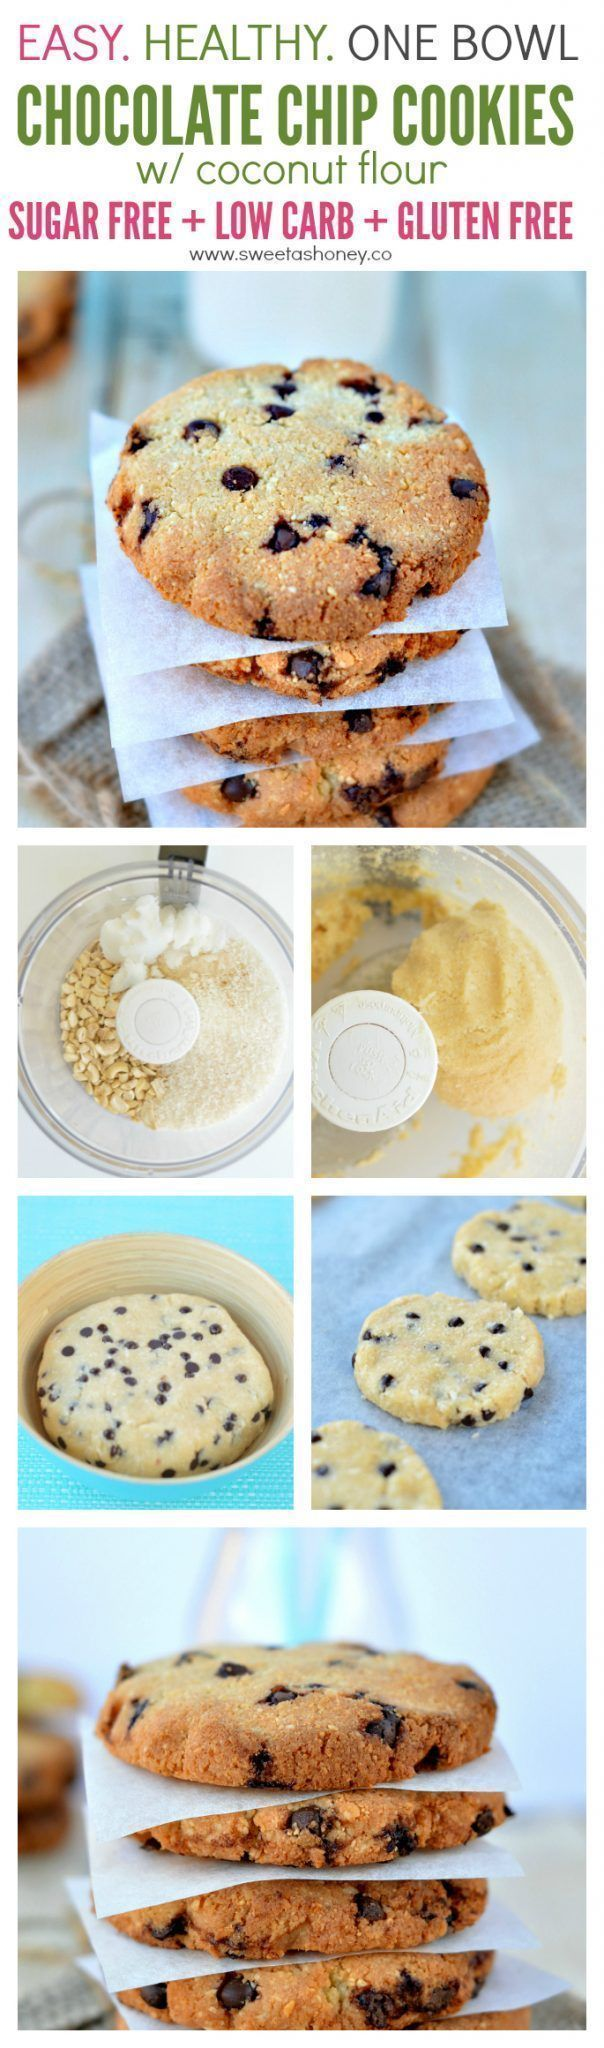 32 best sugar free meals images on pinterest vegan recipes no delicious sugar free chocolate chip cookies with coconut flour and stevia healthy gluten free easy food processor recipe perfect for diabetic forumfinder Choice Image